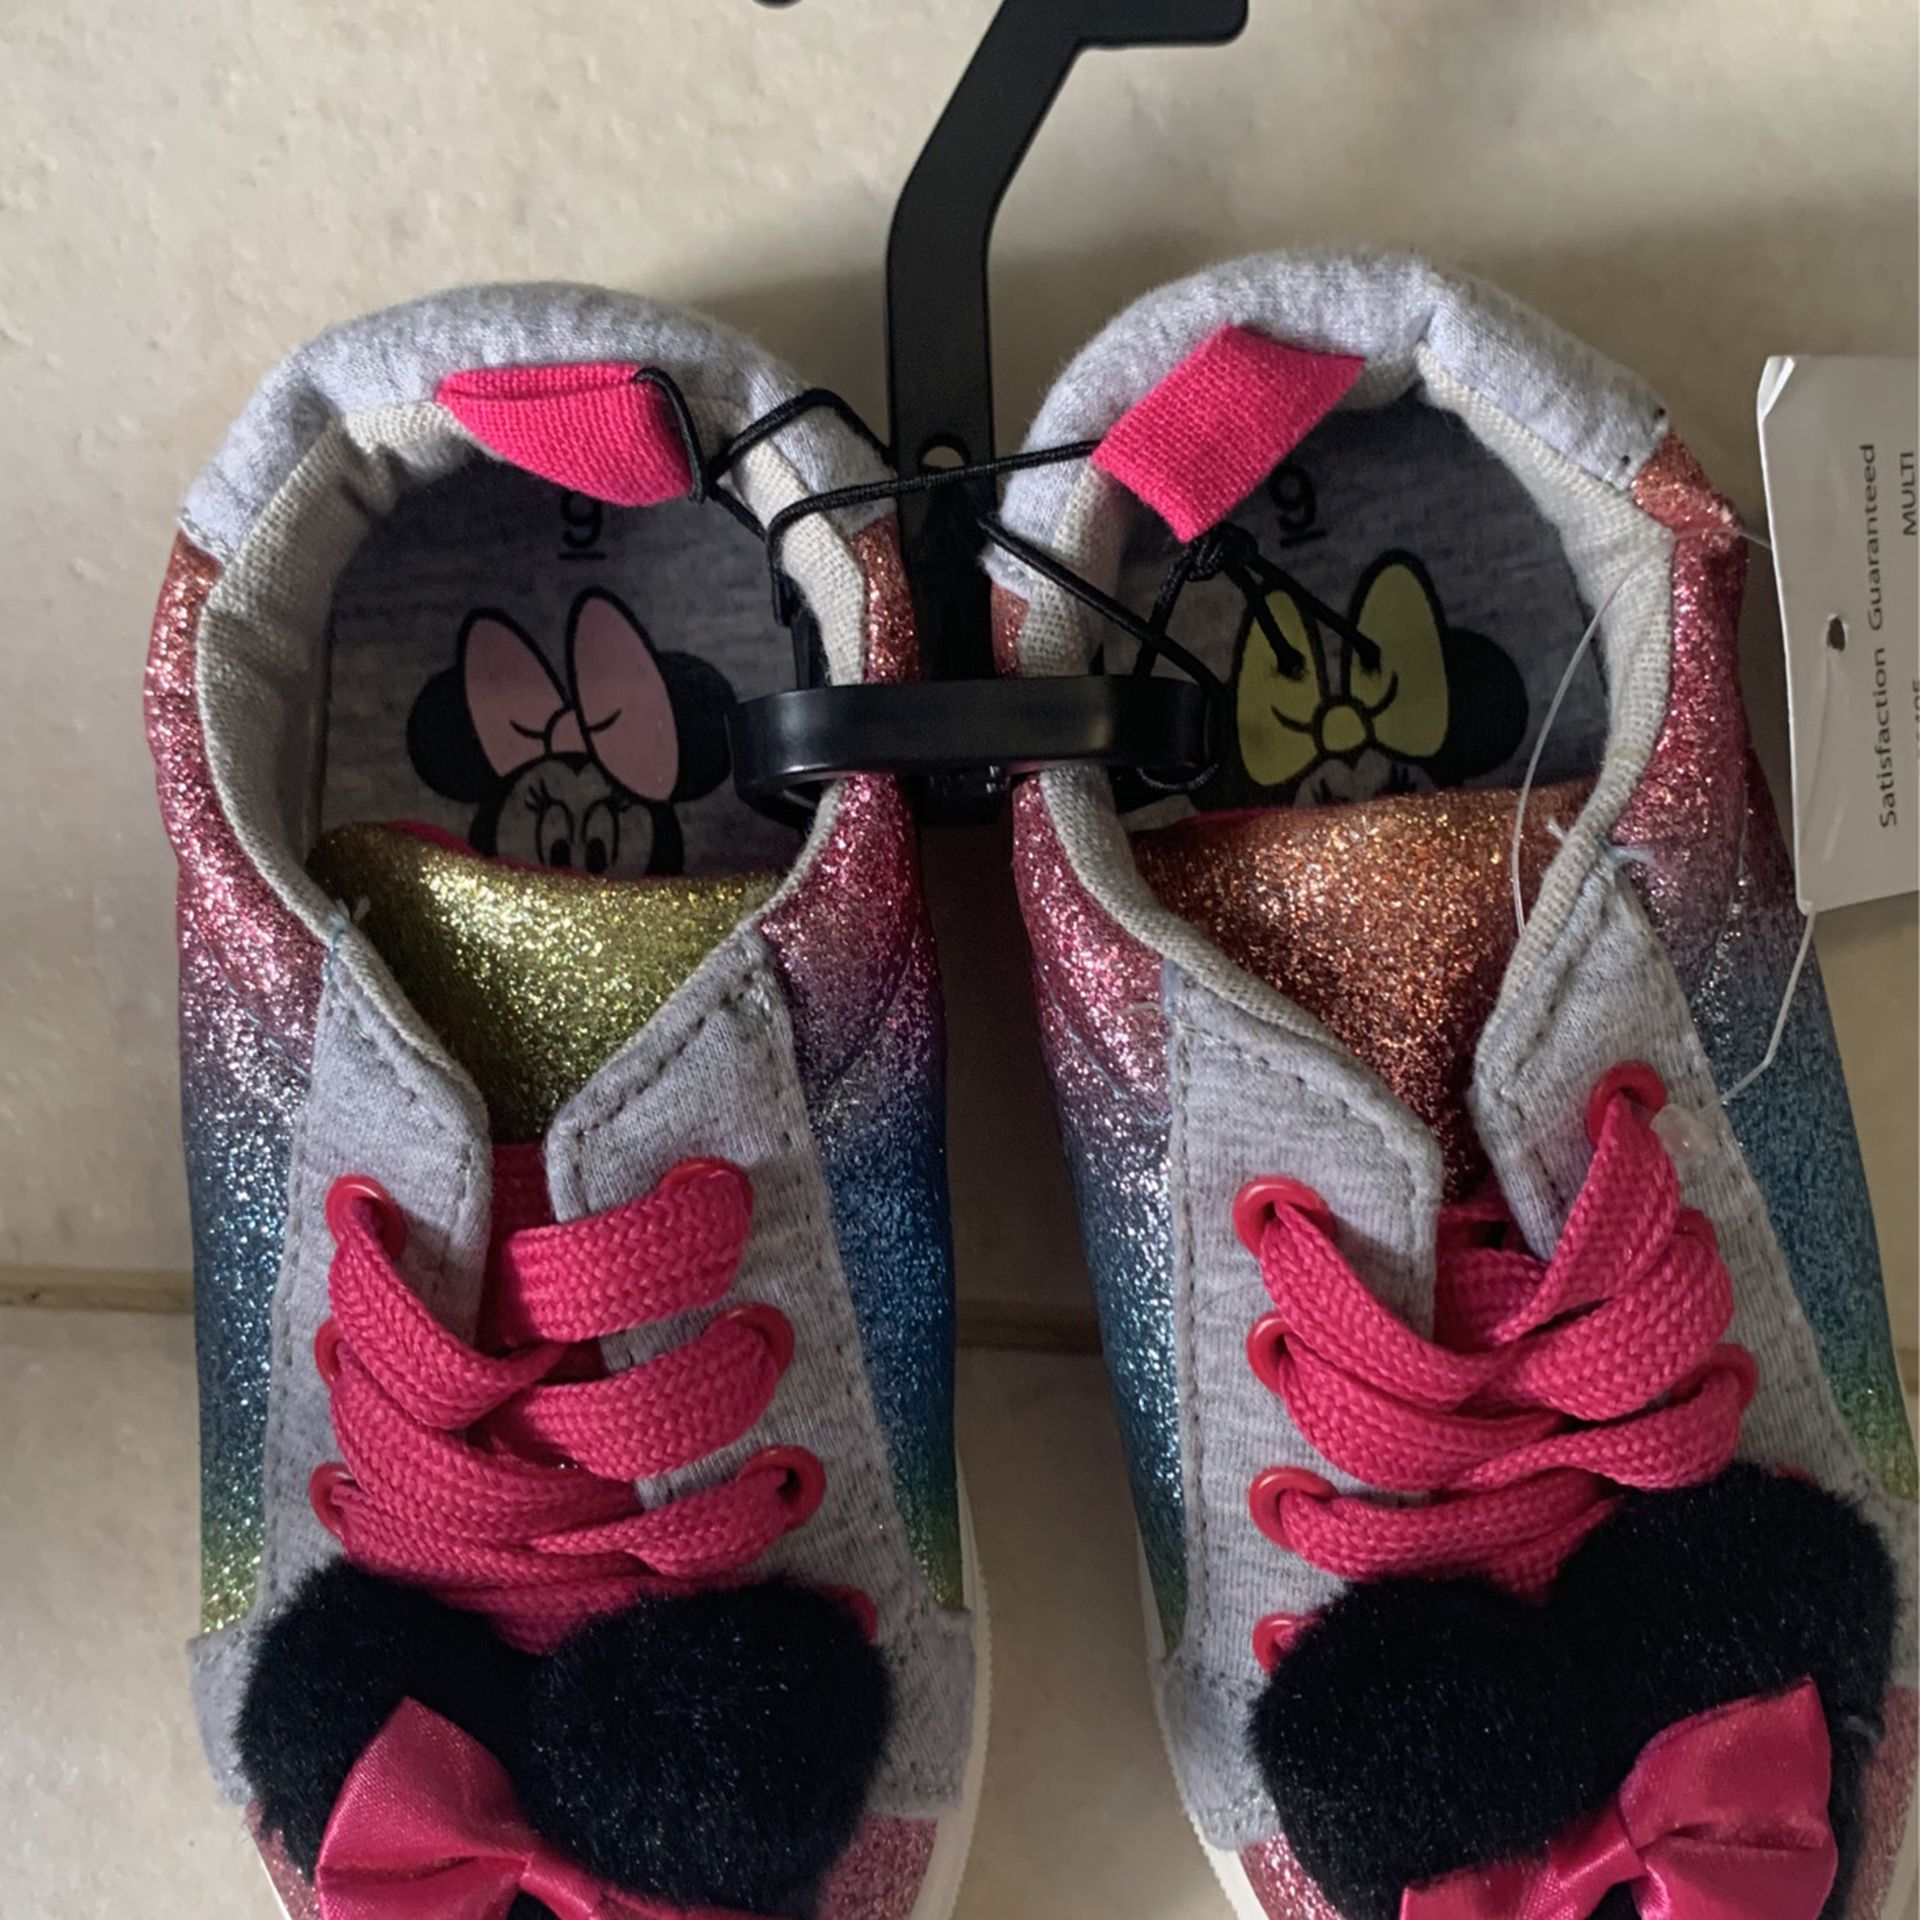 Size 9 Toddler Shoes Nwt